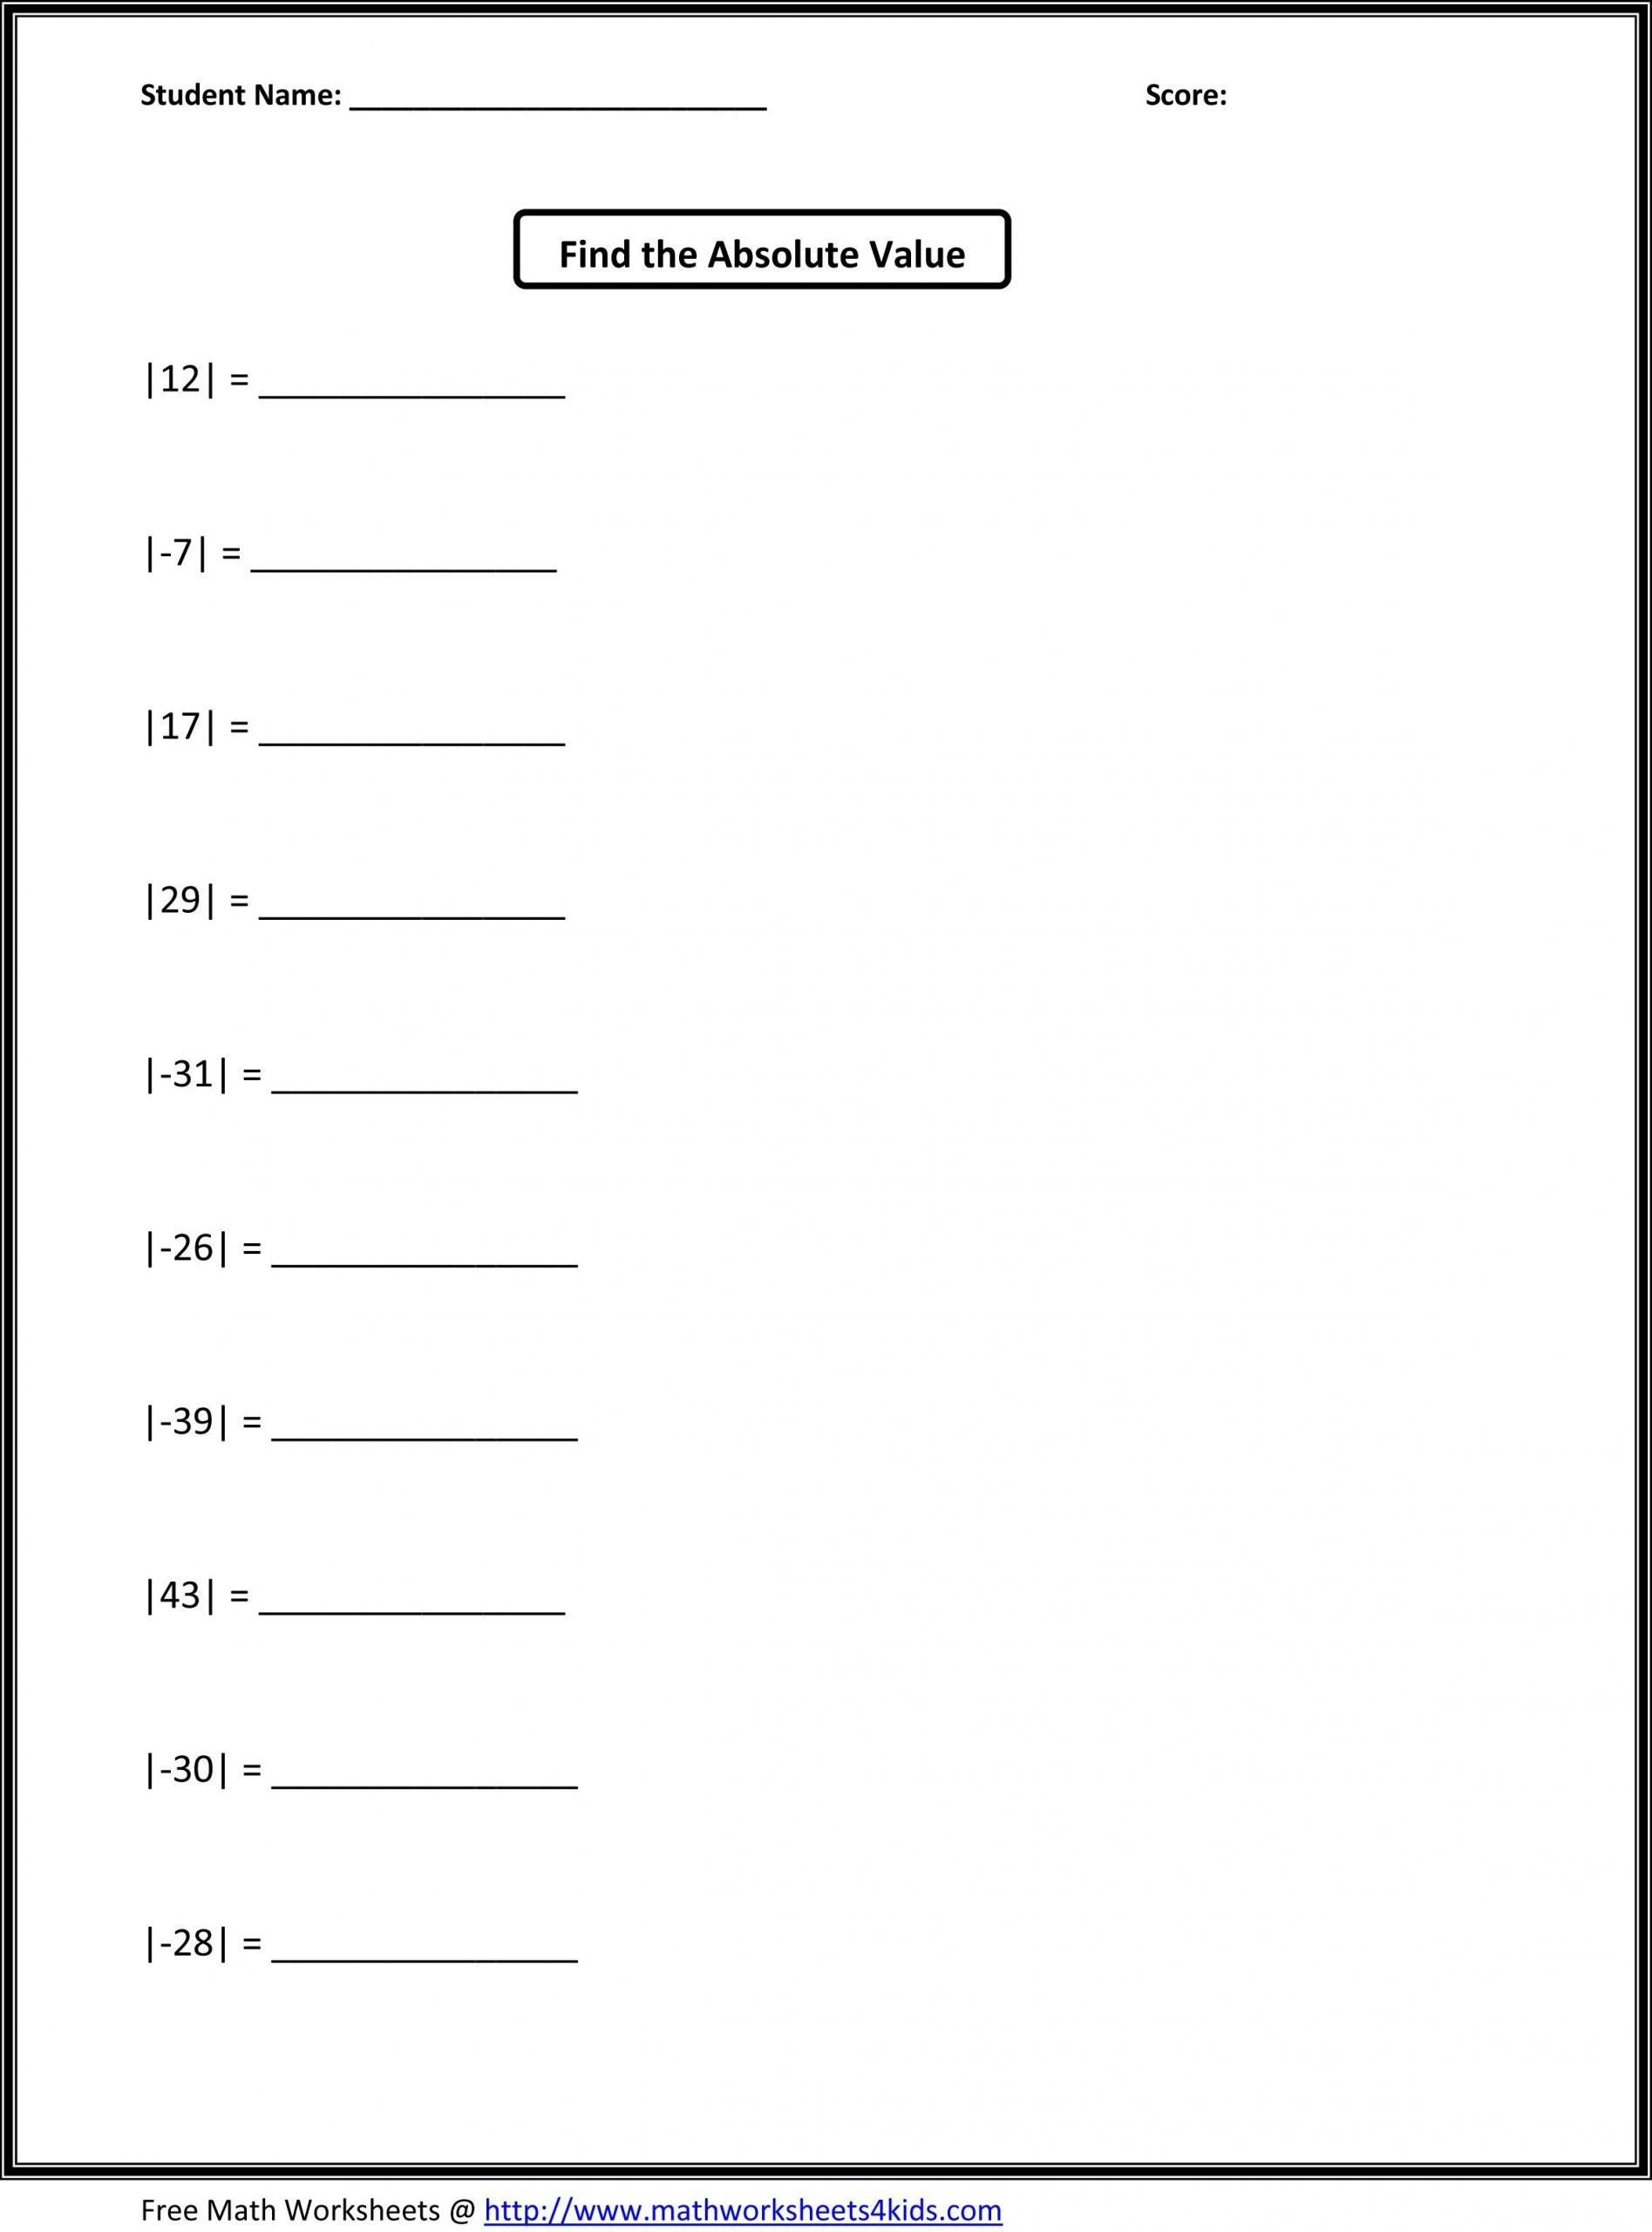 Measurement Worksheets 5th Grade Pin On Grade Worksheets & Sample Printables